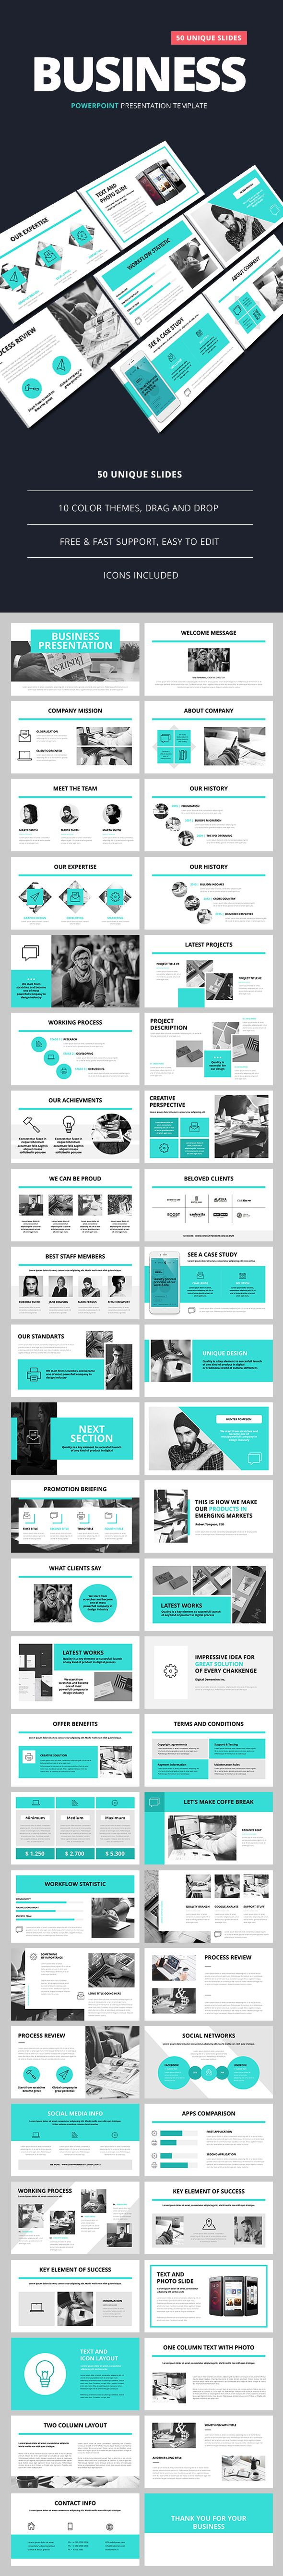 Business Presentation - Business PowerPoint Templates